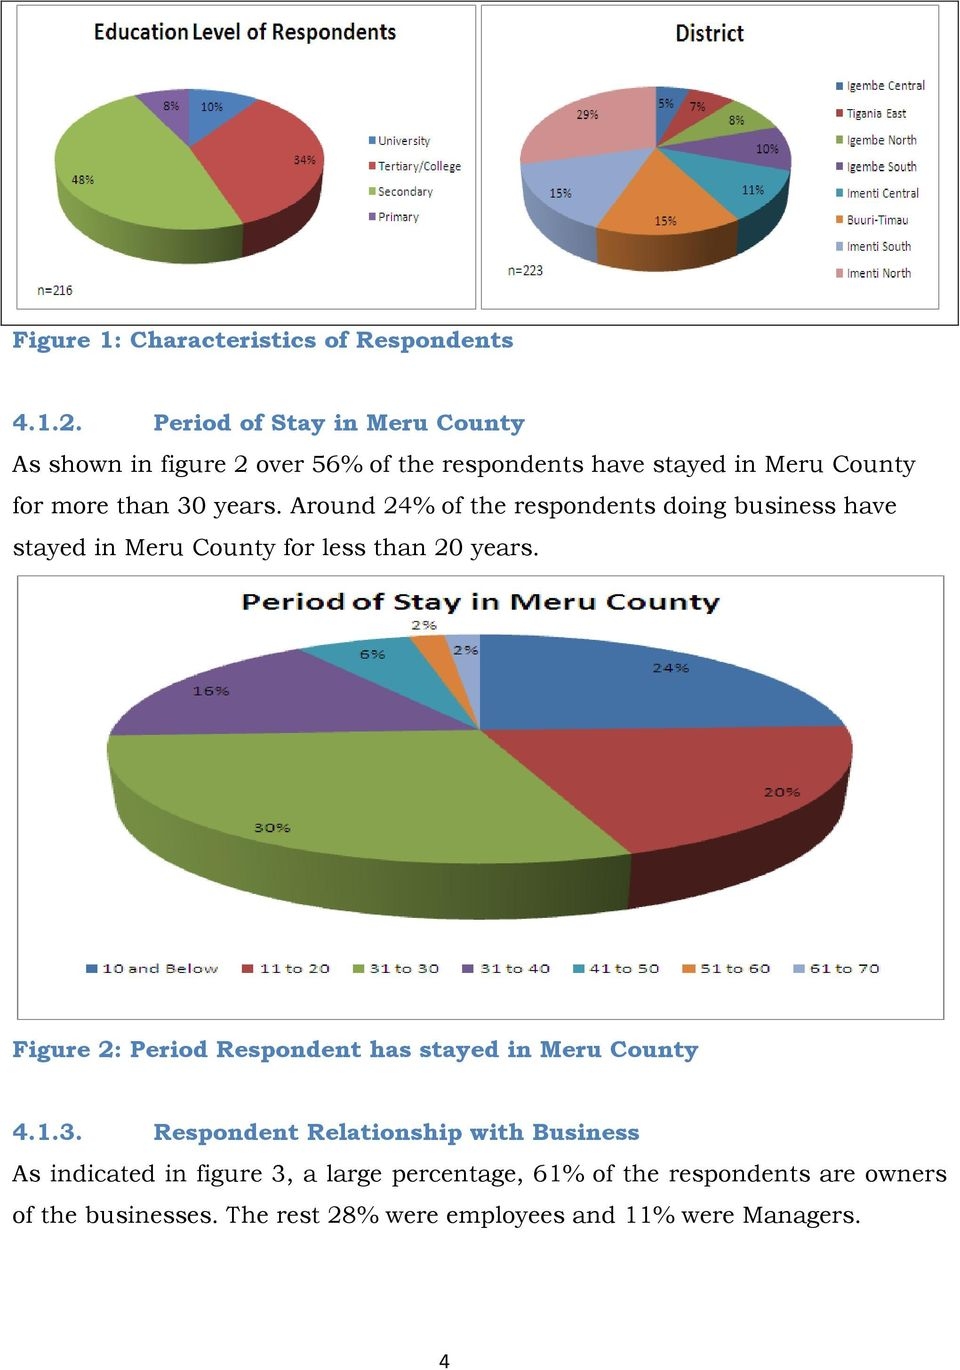 Around 24% of the respondents doing business have stayed in Meru County for less than 20 years.